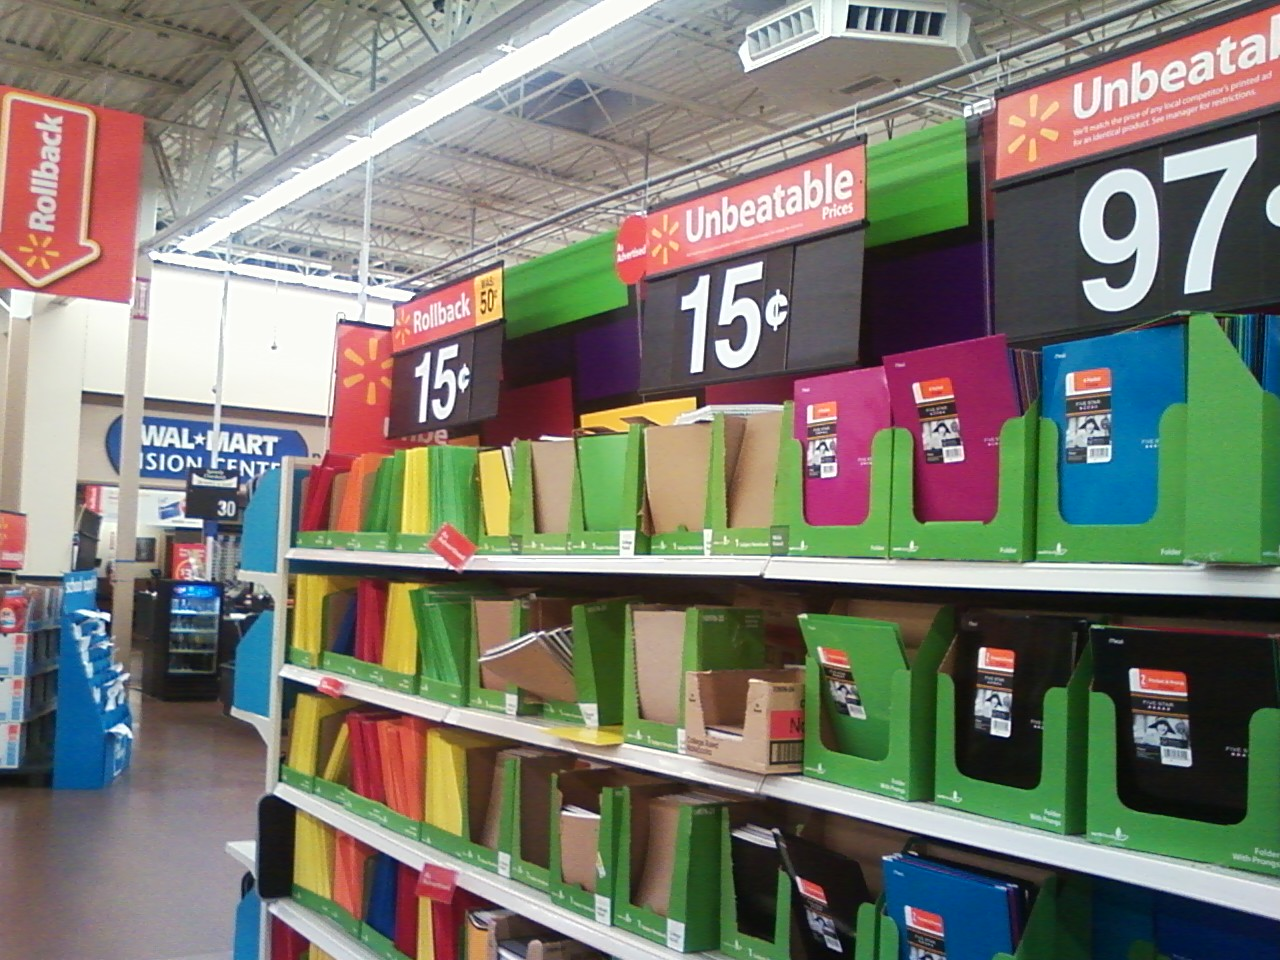 Photo: notebooks at Walmart